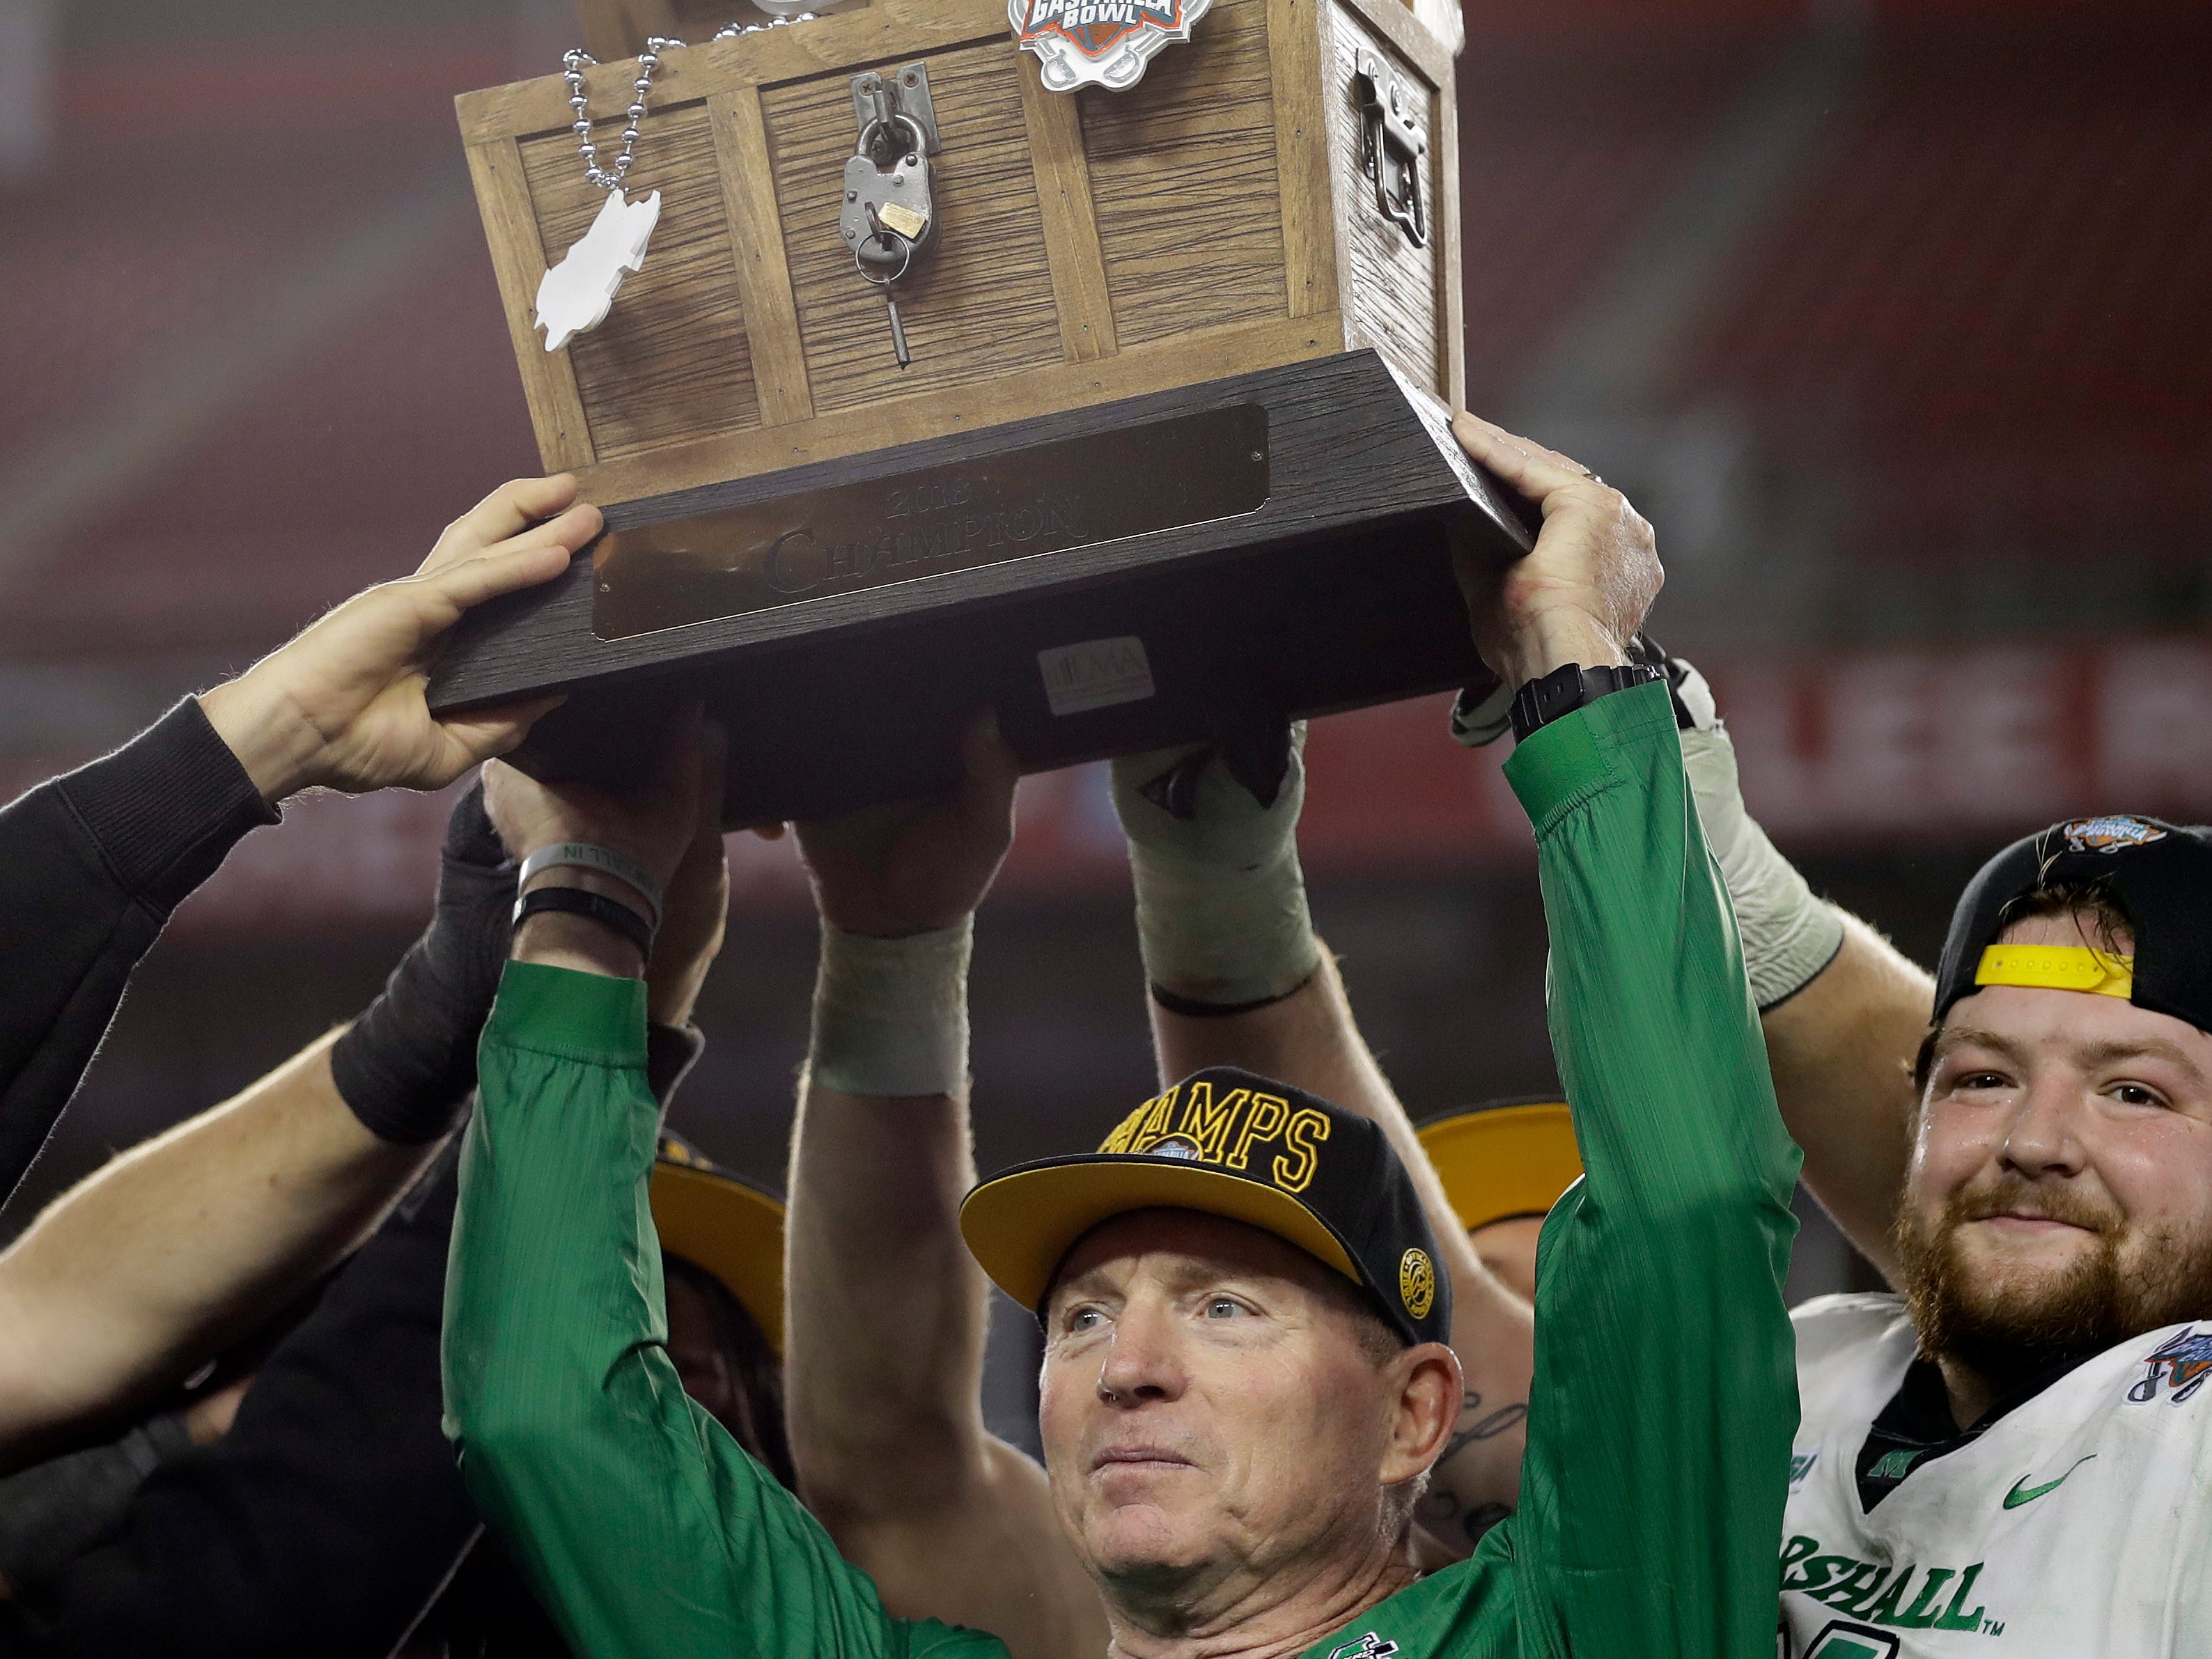 Marshall coach Doc Holliday holds up the Gasparilla Bowl  trophy after Marshall defeated South Florida, 38-20, in Tampa, Fla.